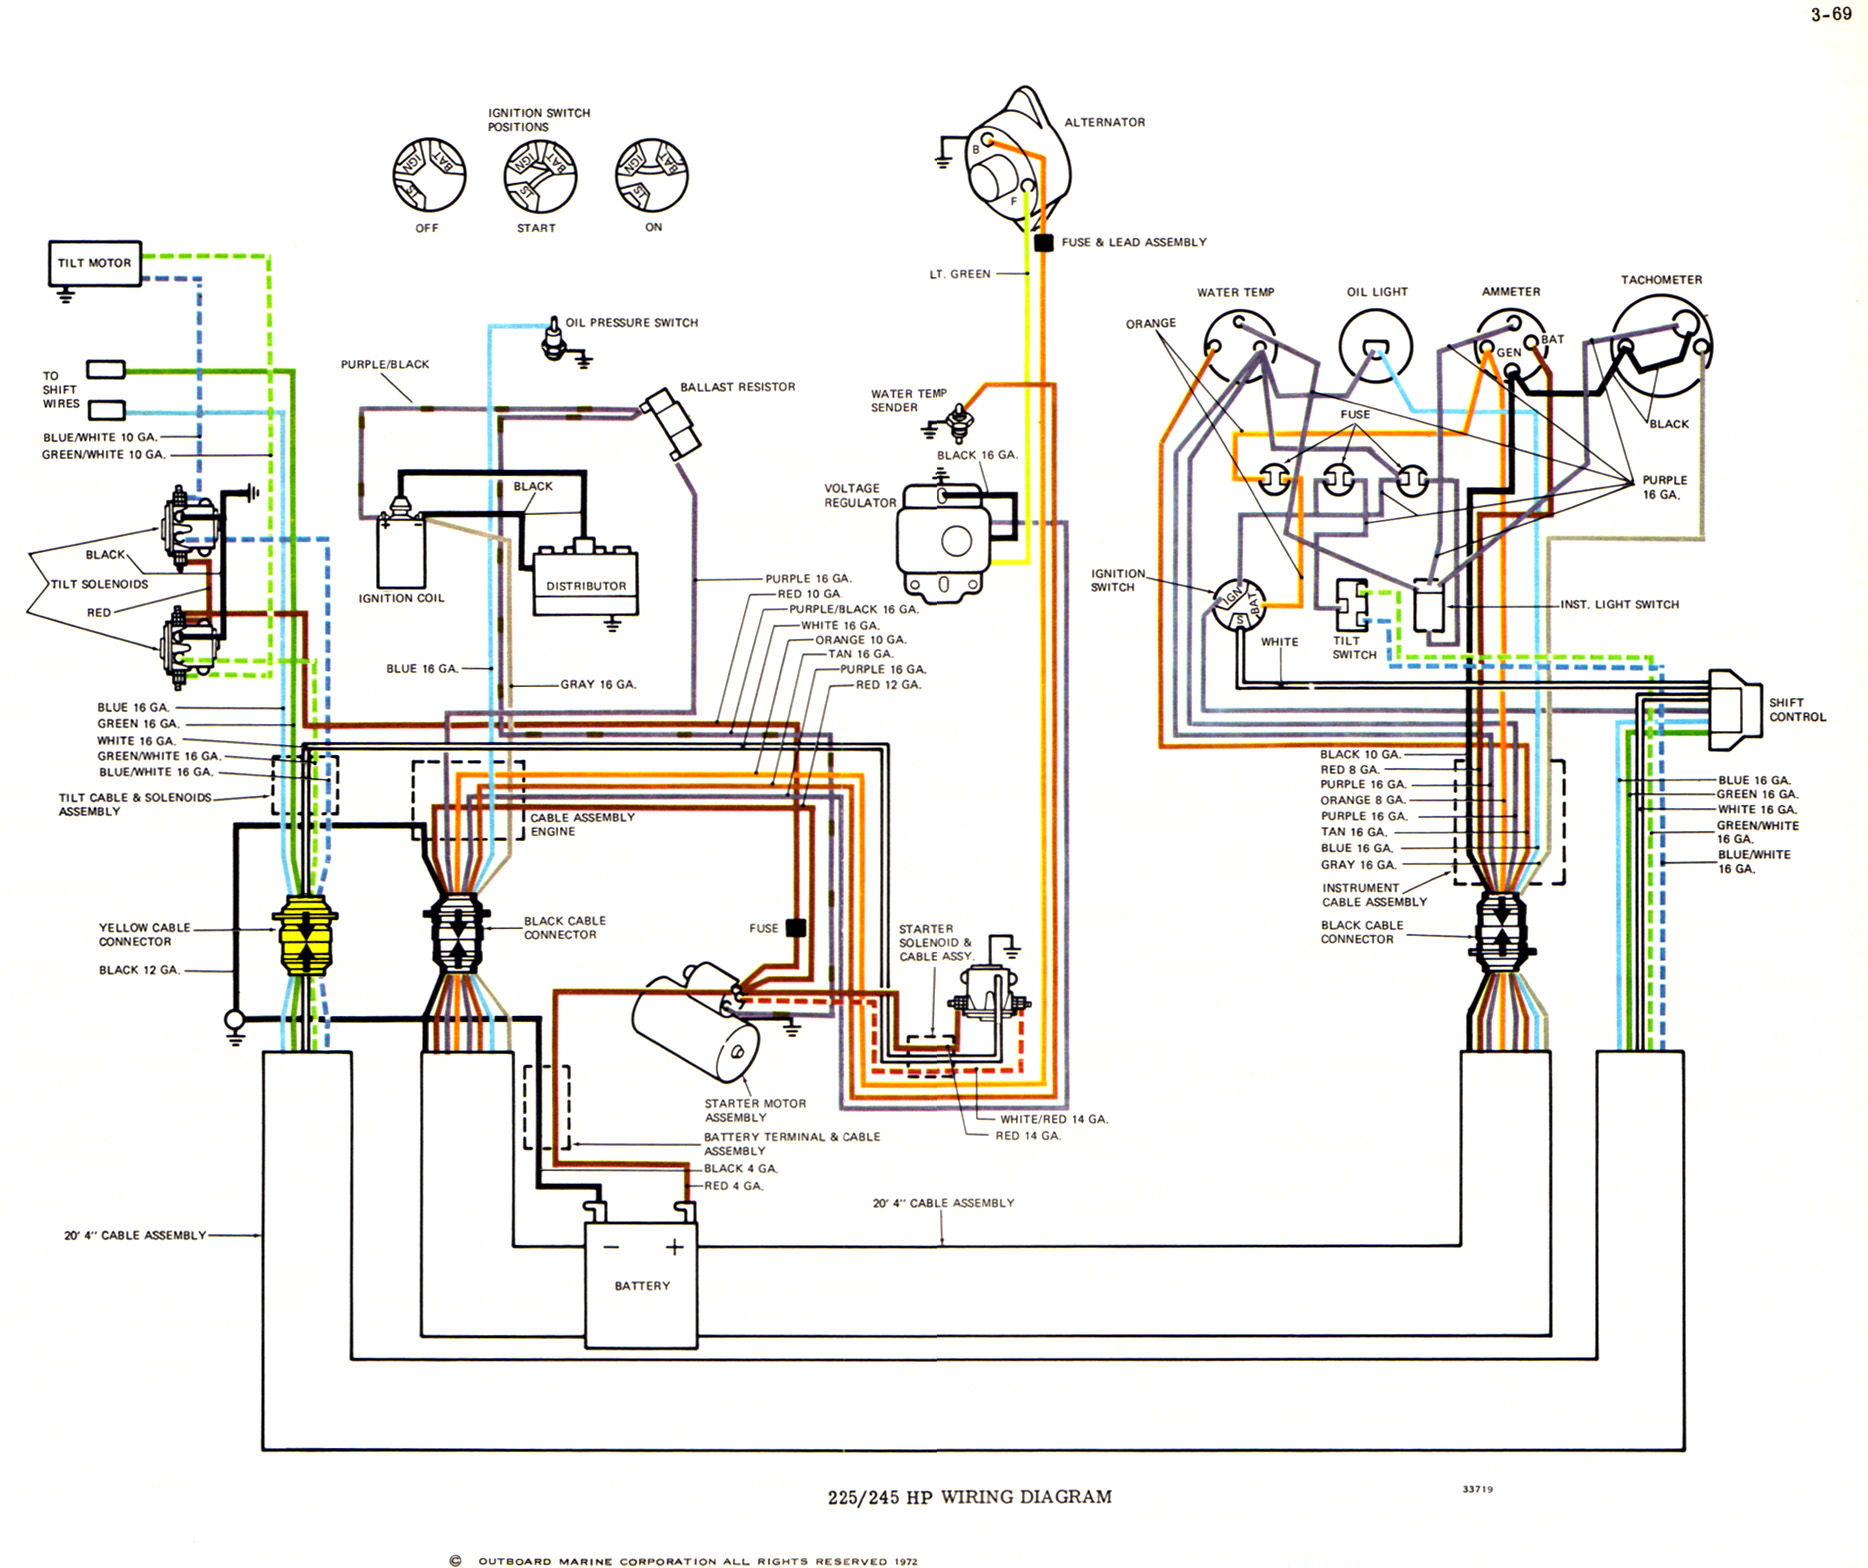 sea ray boat wiring diagram kenworth t800b wiring diagram, circuit diagram, mercury wiring harness diagram